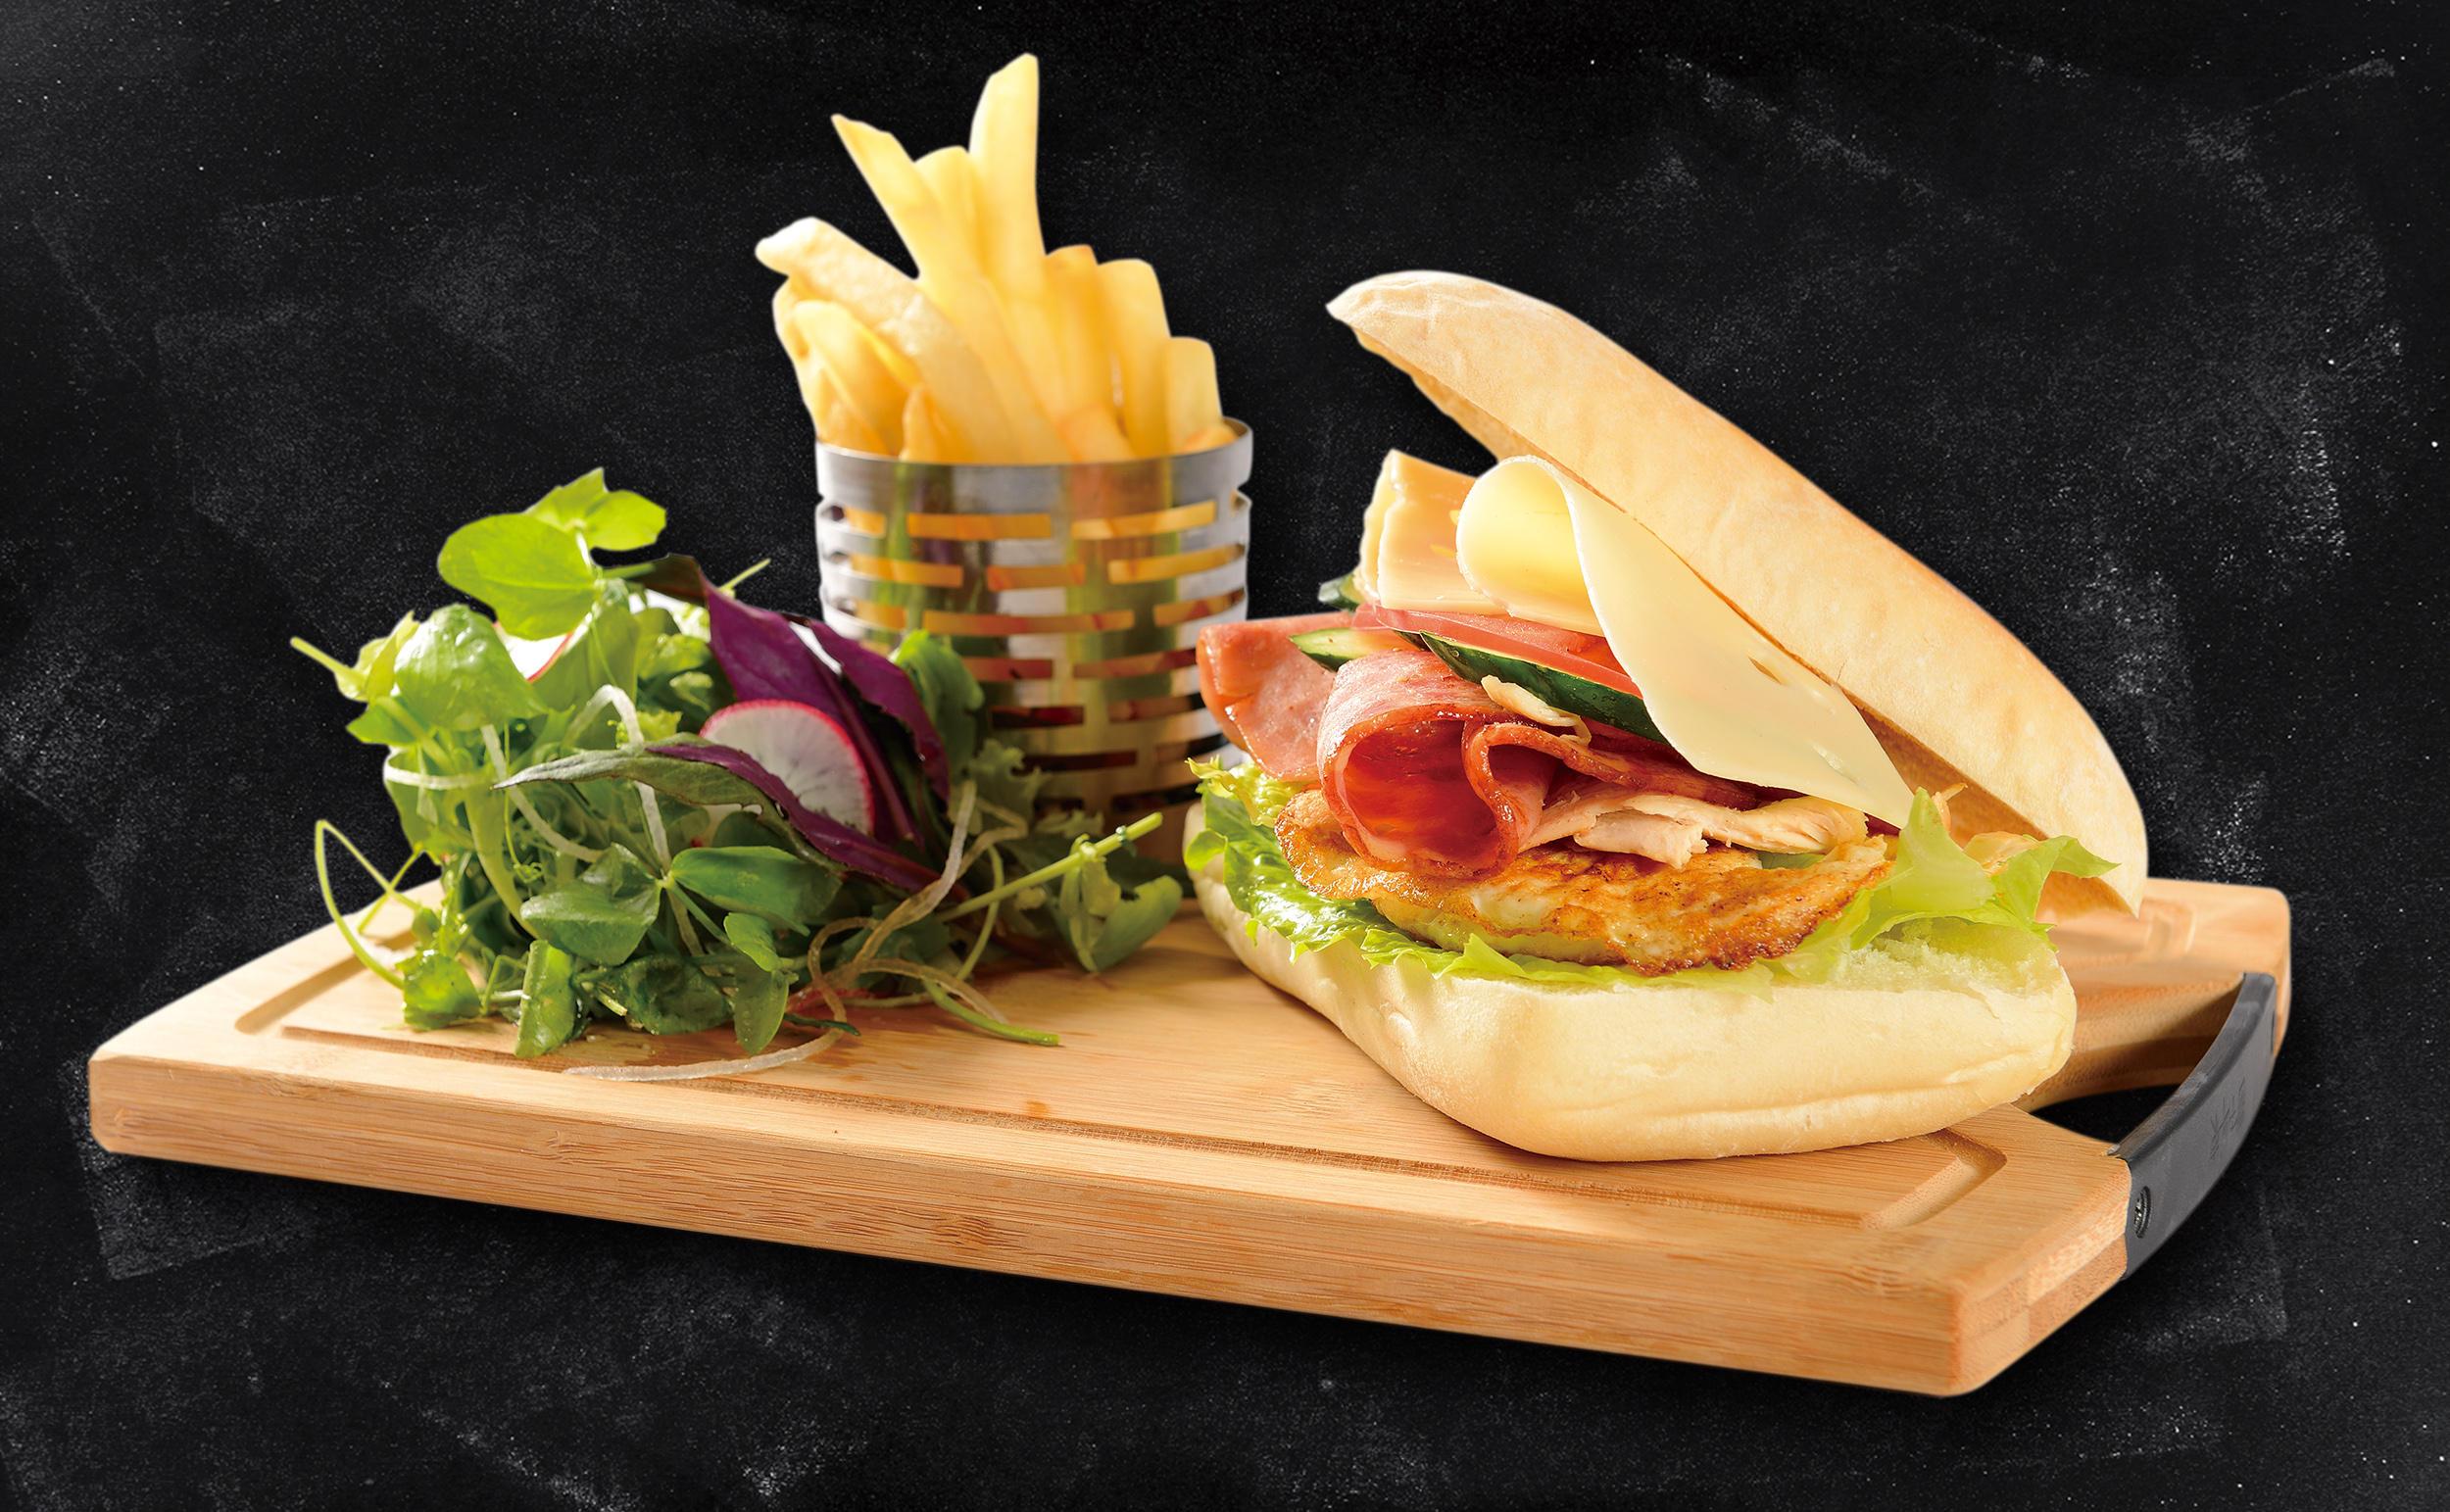 <b>Club Sandwich</b><br/>Traditional Club Sandwich with a Grilled Chicken